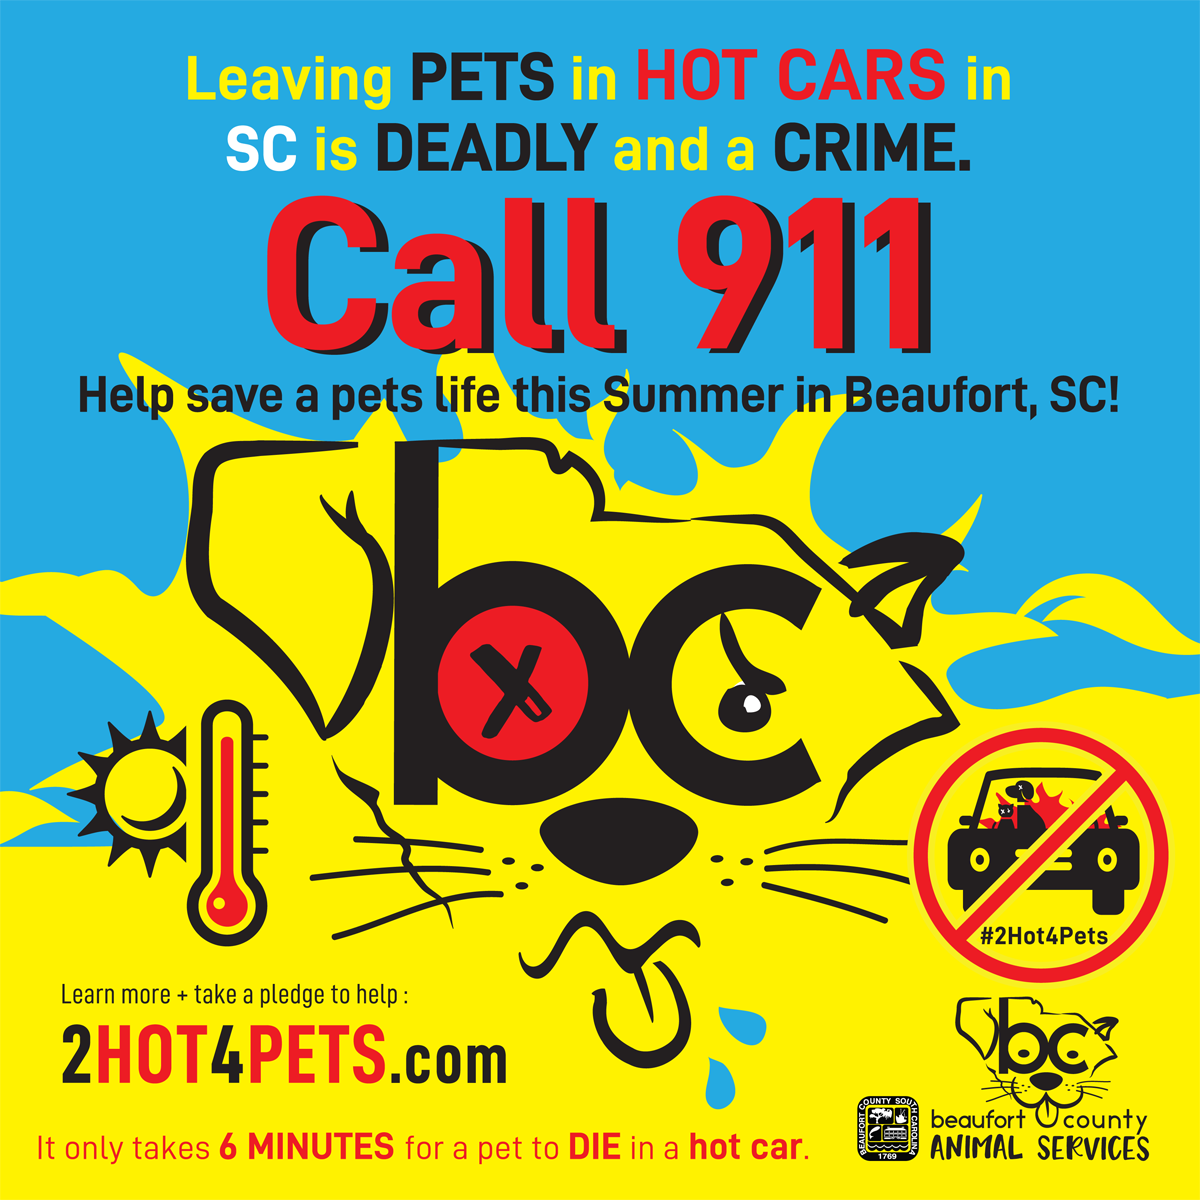 BCAS #2HOT4PETS Leaving your #pet in a hot car is #deadly and a #crime #SummerSafety #BeaufortSC #heatsafety